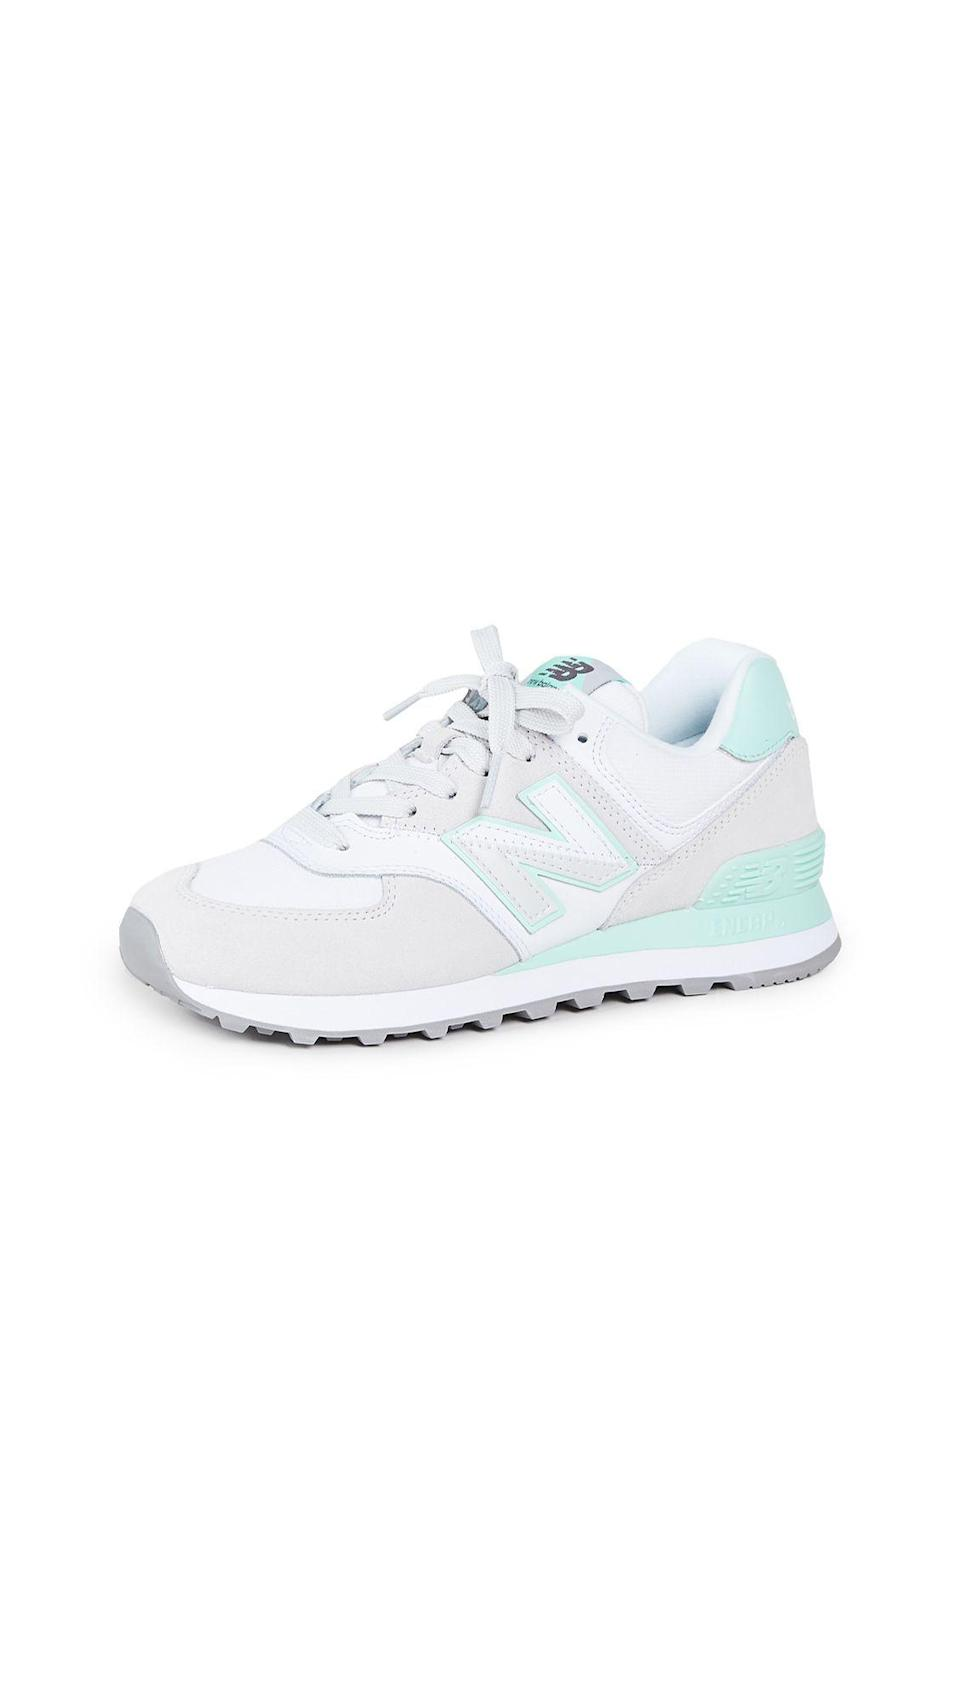 """<p><strong>New Balance</strong></p><p>shopbop.com</p><p><a href=""""https://go.redirectingat.com?id=74968X1596630&url=https%3A%2F%2Fwww.shopbop.com%2F574-split-sail-sneaker-new%2Fvp%2Fv%3D1%2F1568048225.htm&sref=https%3A%2F%2Fwww.harpersbazaar.com%2Ffashion%2Ftrends%2Fg34632594%2Fshopbop-holiday-sale%2F"""" rel=""""nofollow noopener"""" target=""""_blank"""" data-ylk=""""slk:Shop Now"""" class=""""link rapid-noclick-resp"""">Shop Now</a></p><p><strong><del>$80</del> $56 (34% off)</strong></p><p>New Balance's resurgence in the fashion world has felt especially vast this year. Here, the brand's legendary 574 sneakers, which Rihanna has worn in various color combos. </p>"""